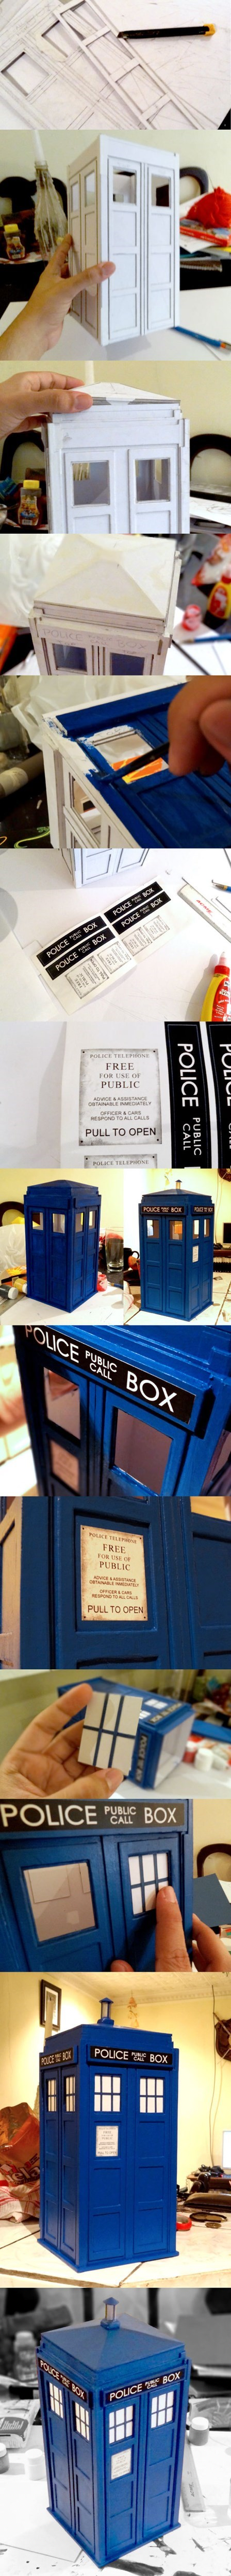 Paper Craft Your Own Public Call Box